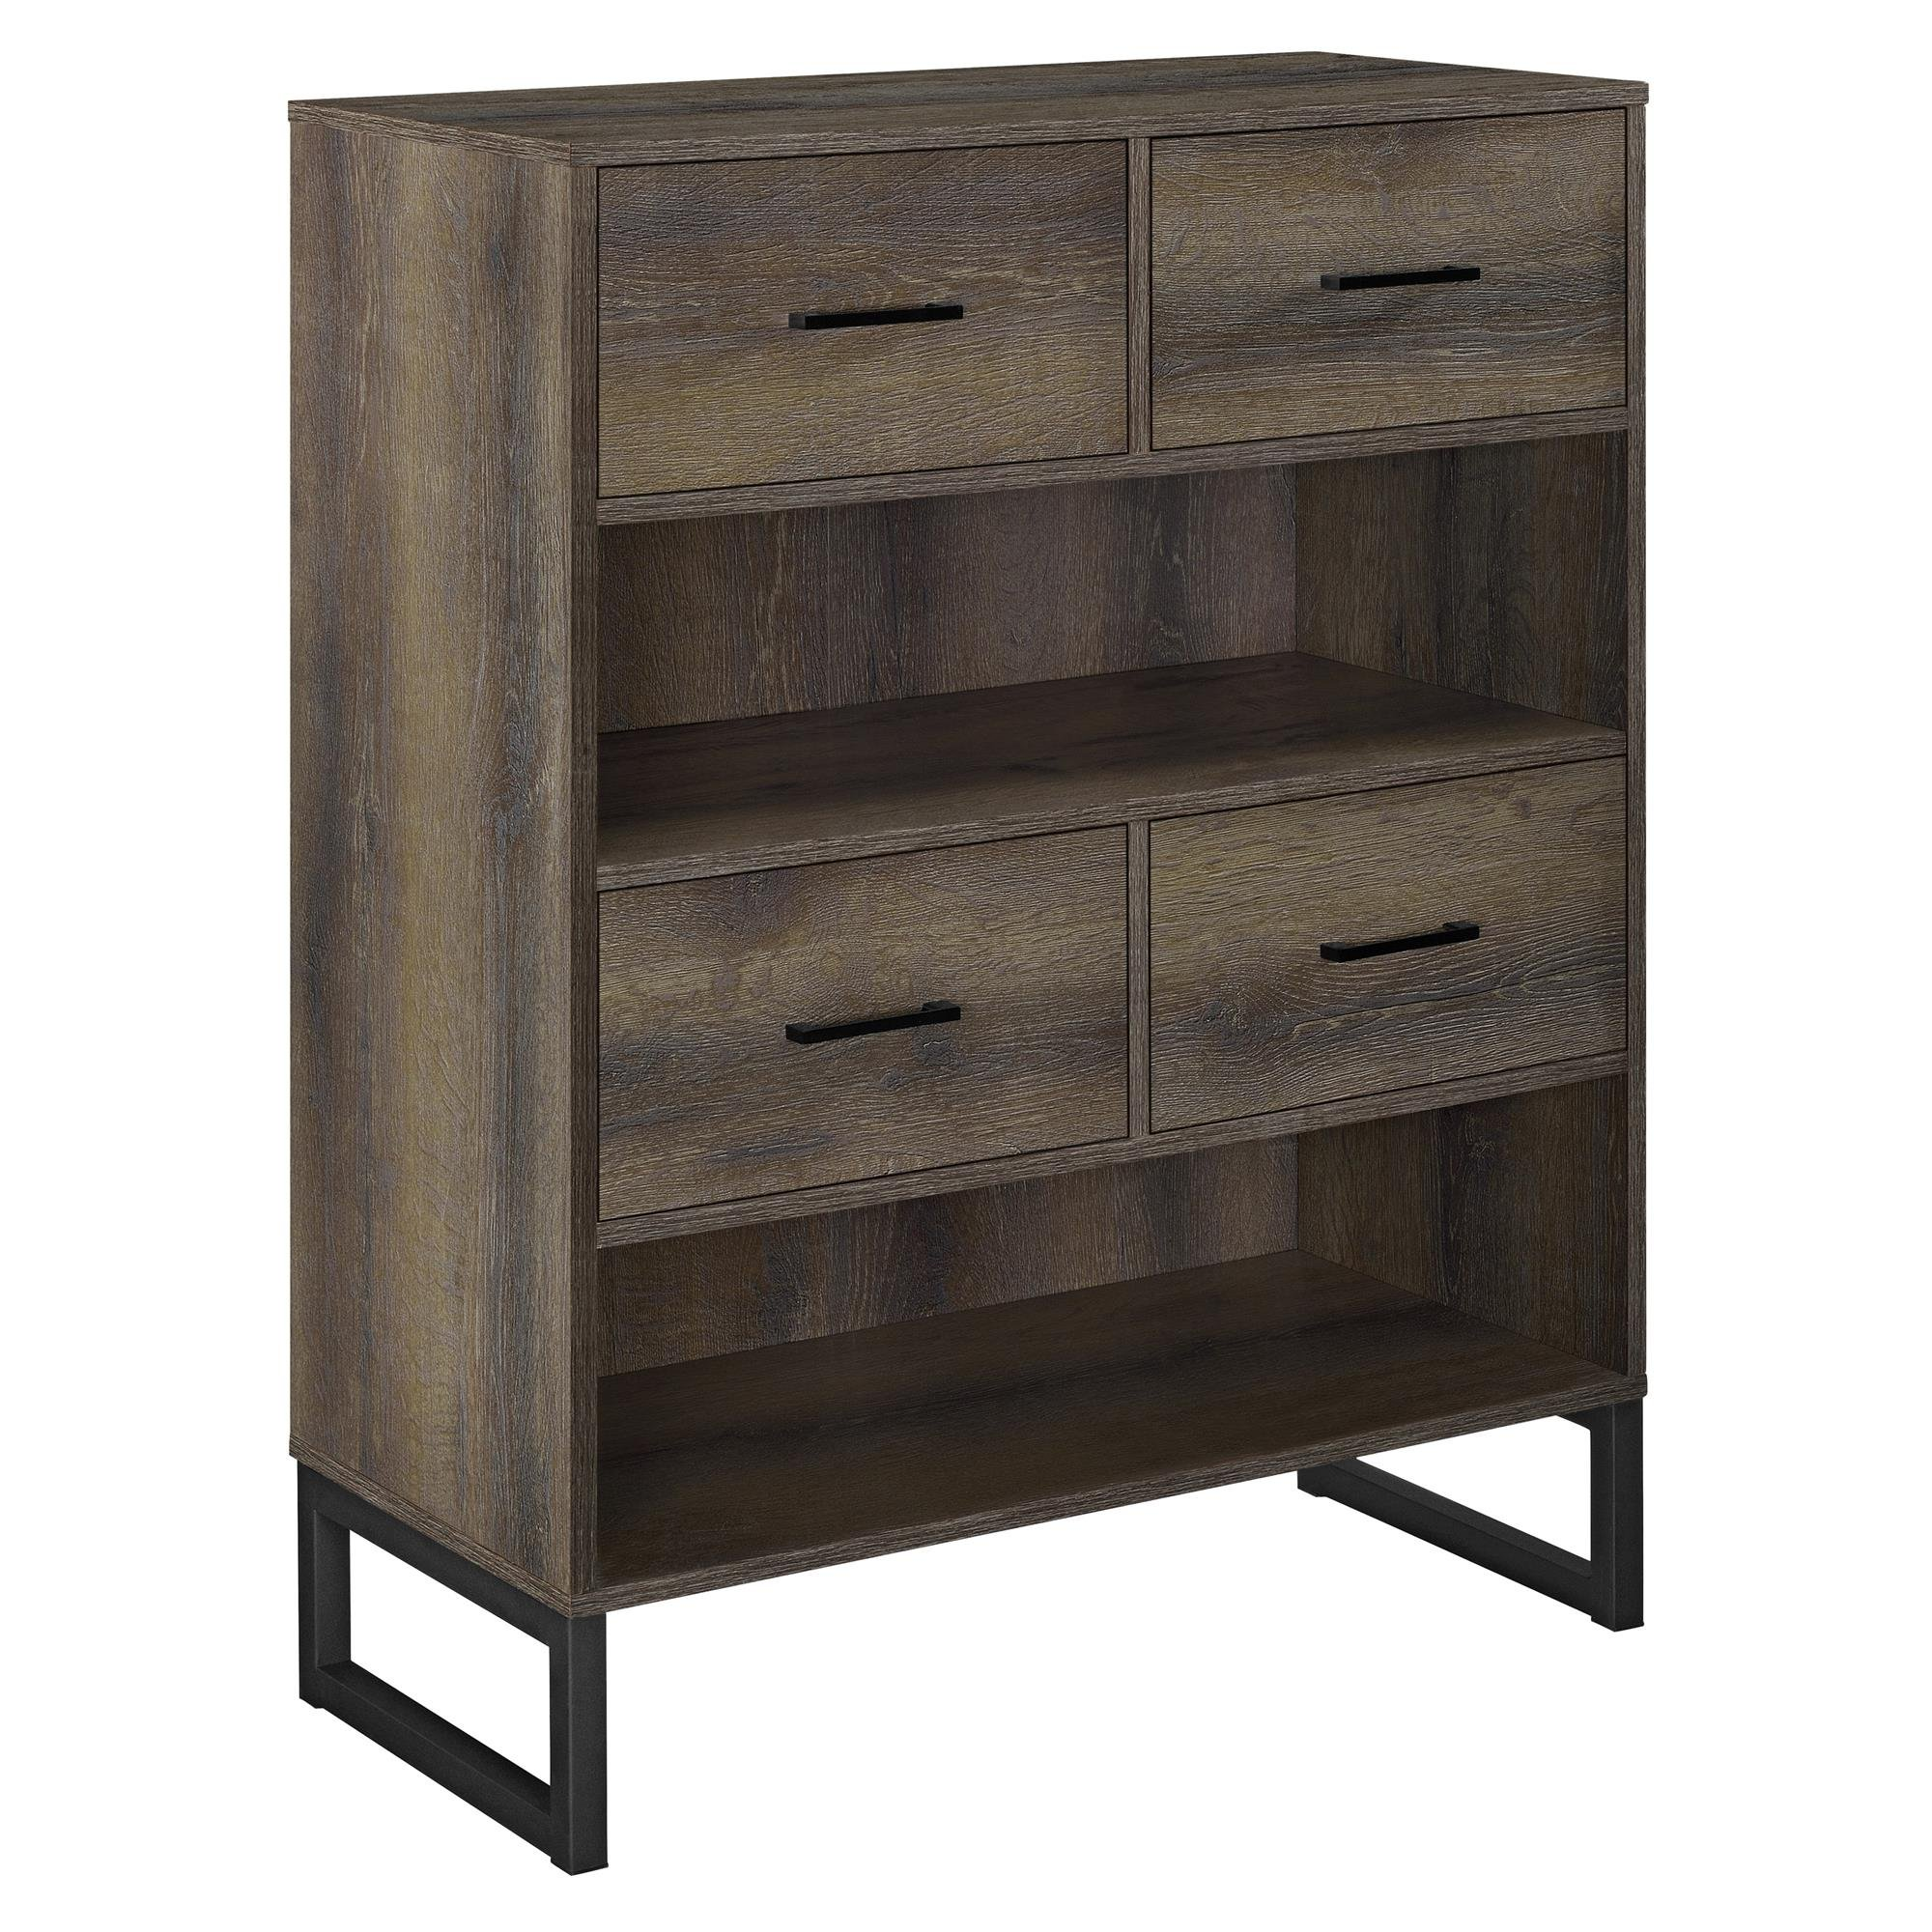 Ameriwood Home 9665096COM Candon Bookcase Bins, Distressed Brown Oak by Ameriwood Home